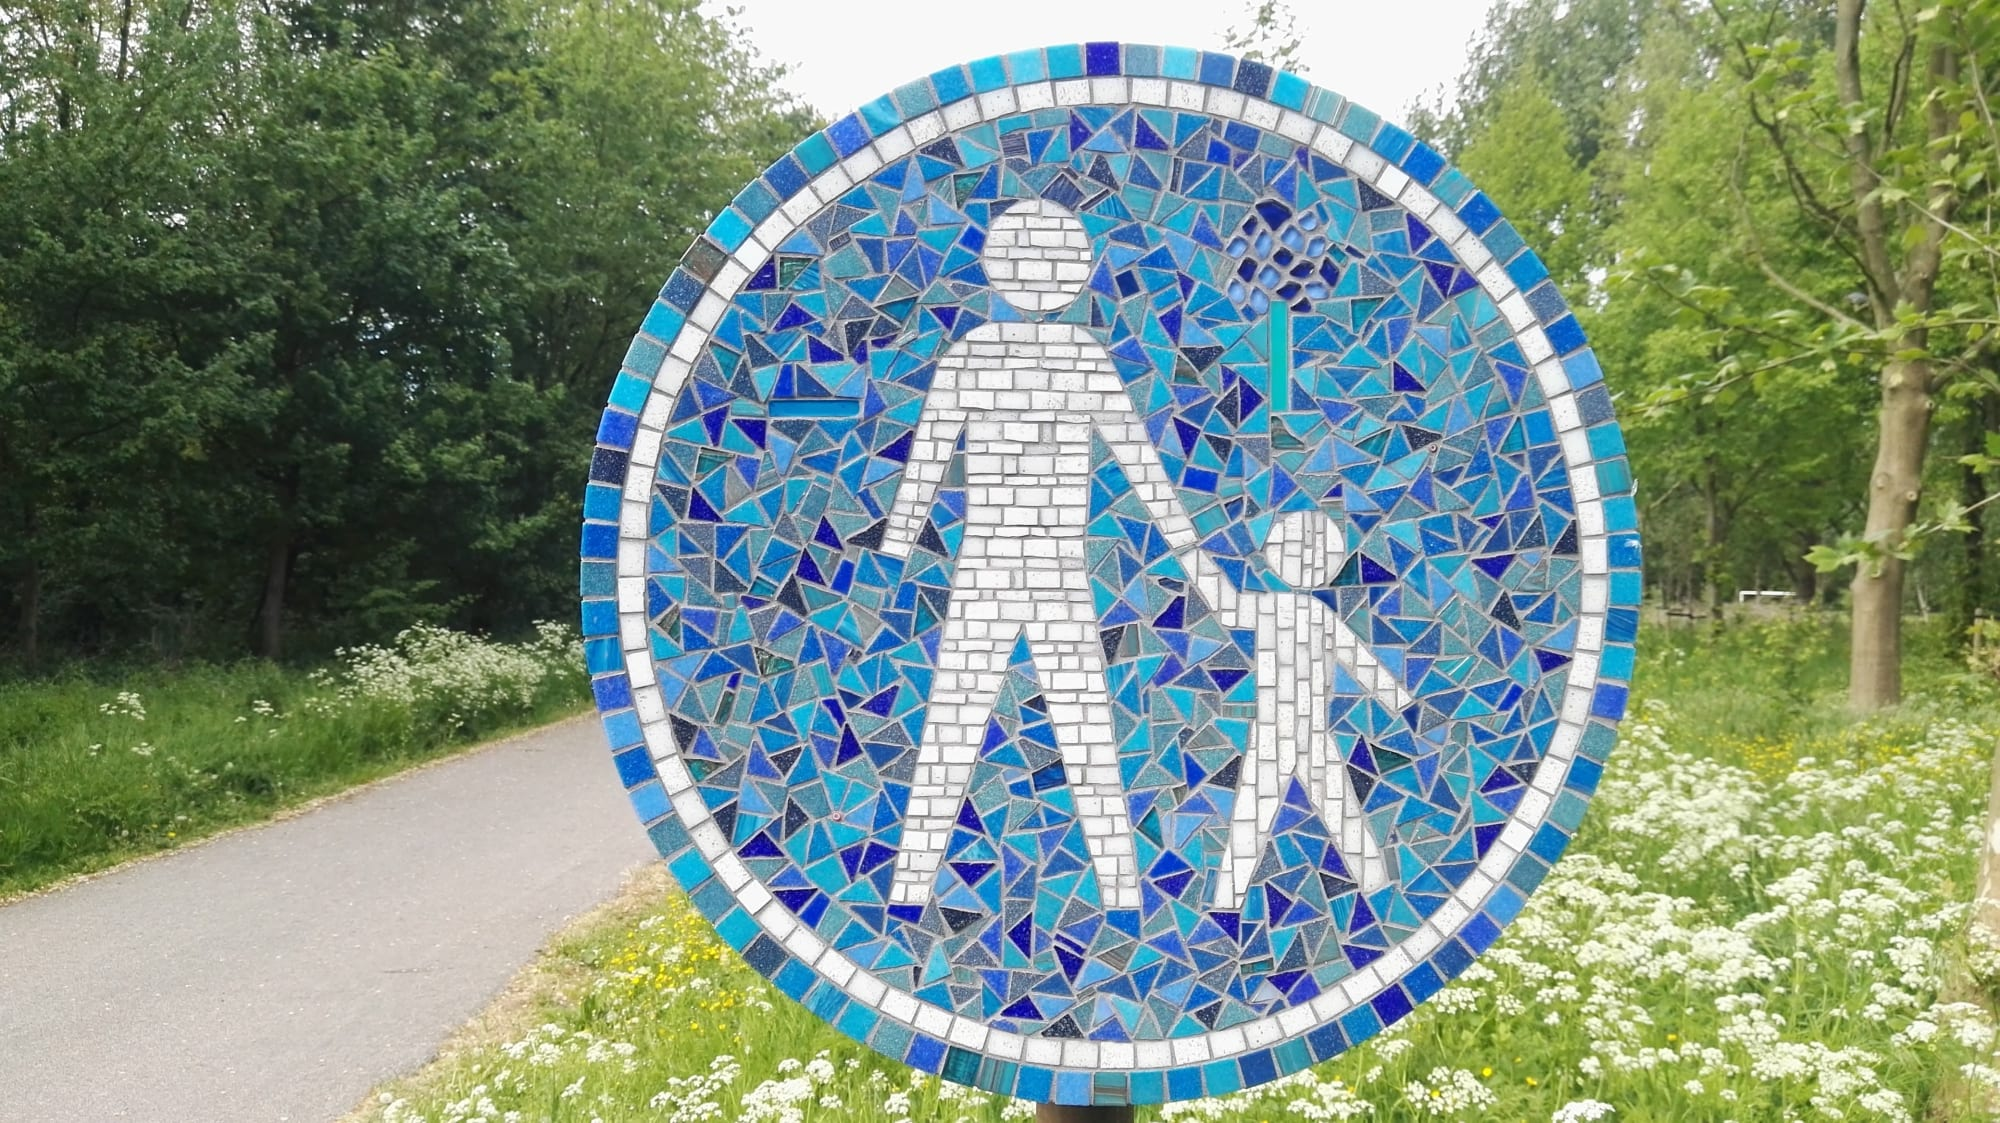 Public Mosaics by Peter Vial seen at Bijlmerweide, Amsterdam - Footpath